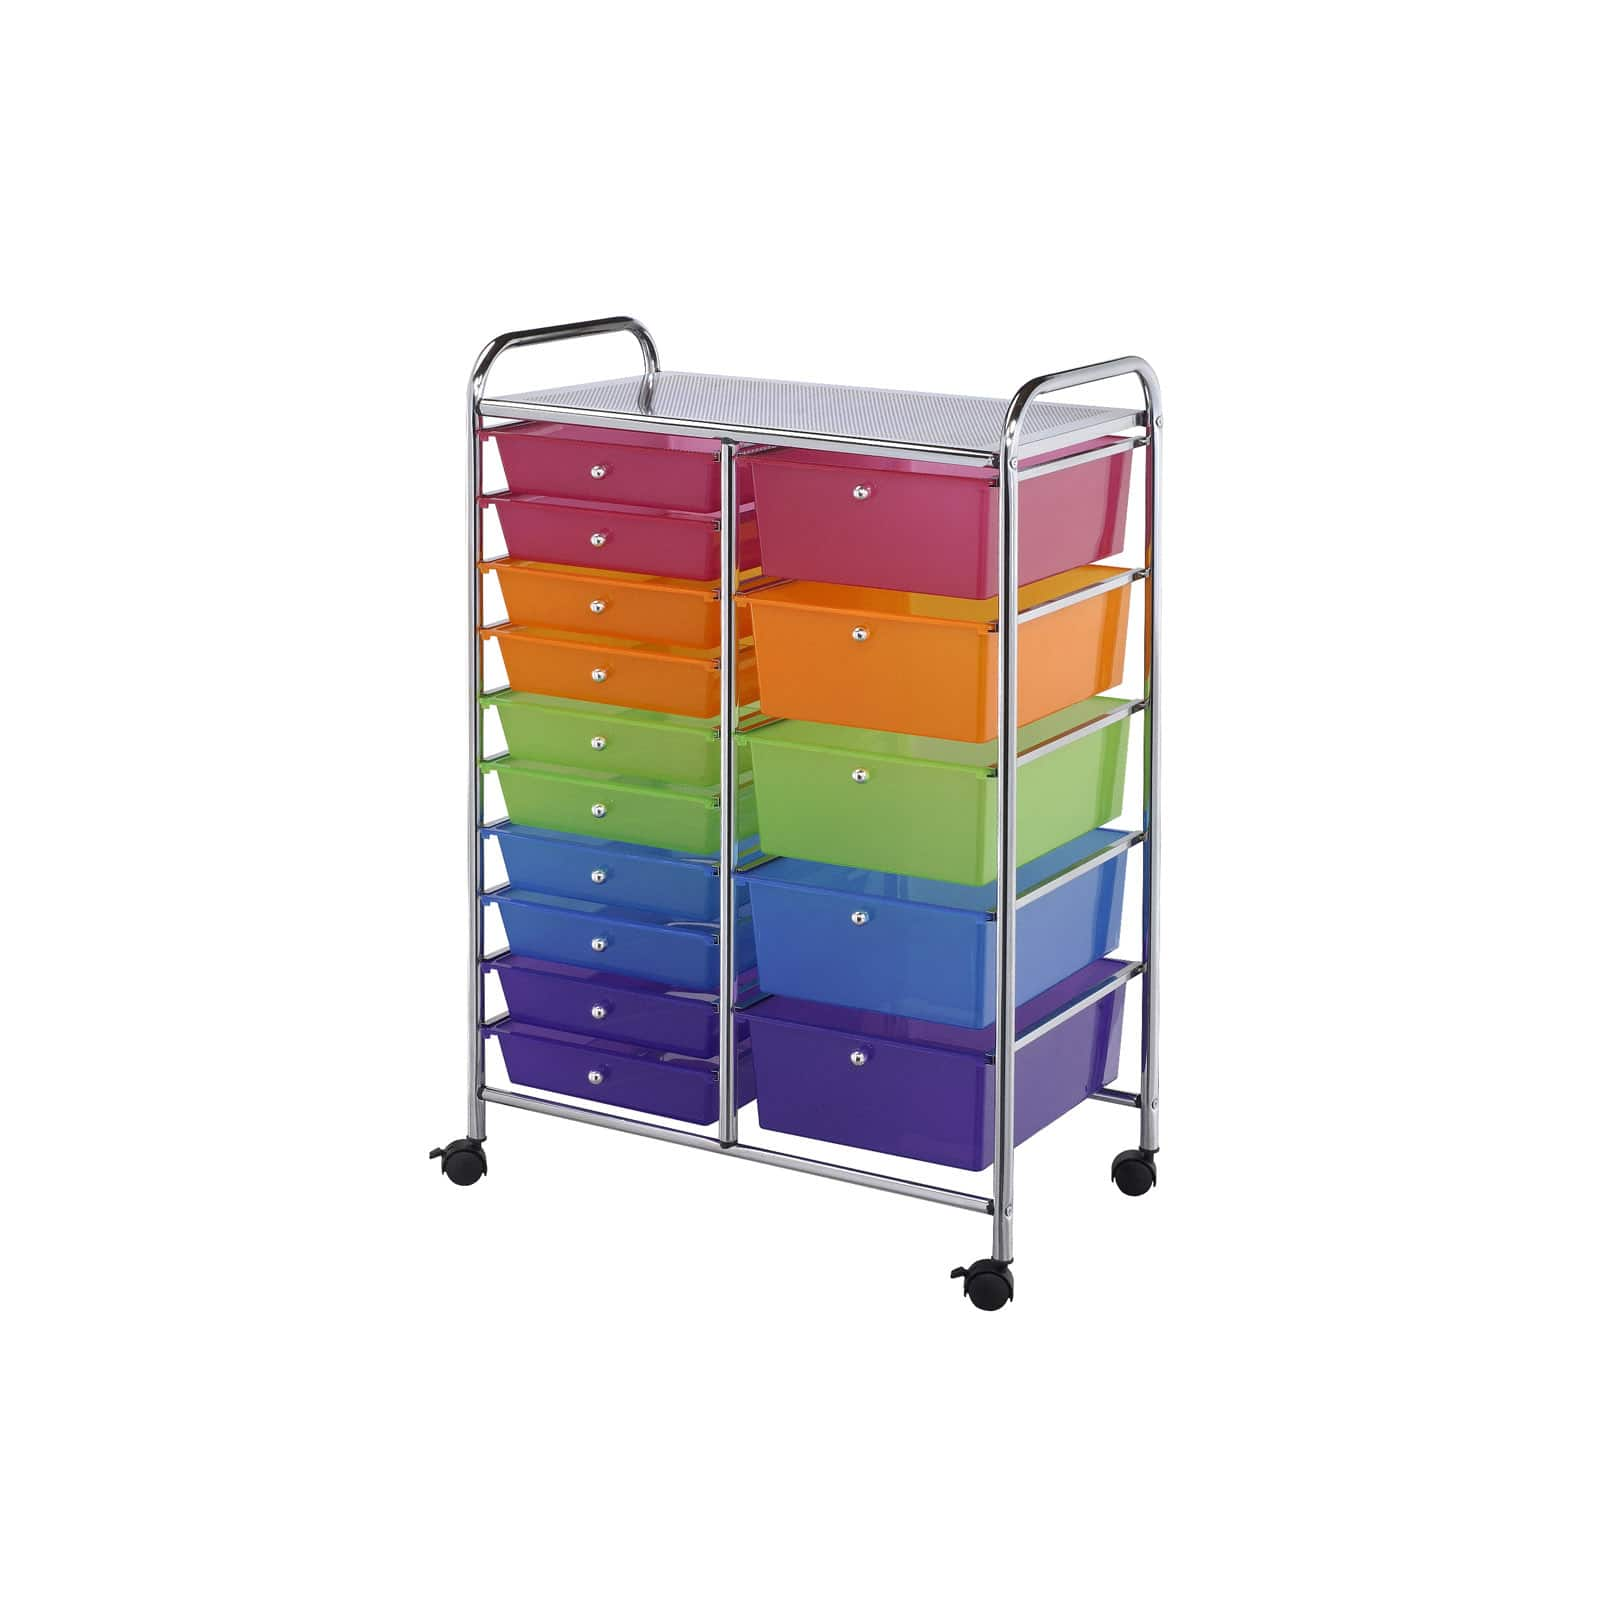 Attirant Darice® Rolling Craft Storage Cart, 15 Drawers. Img